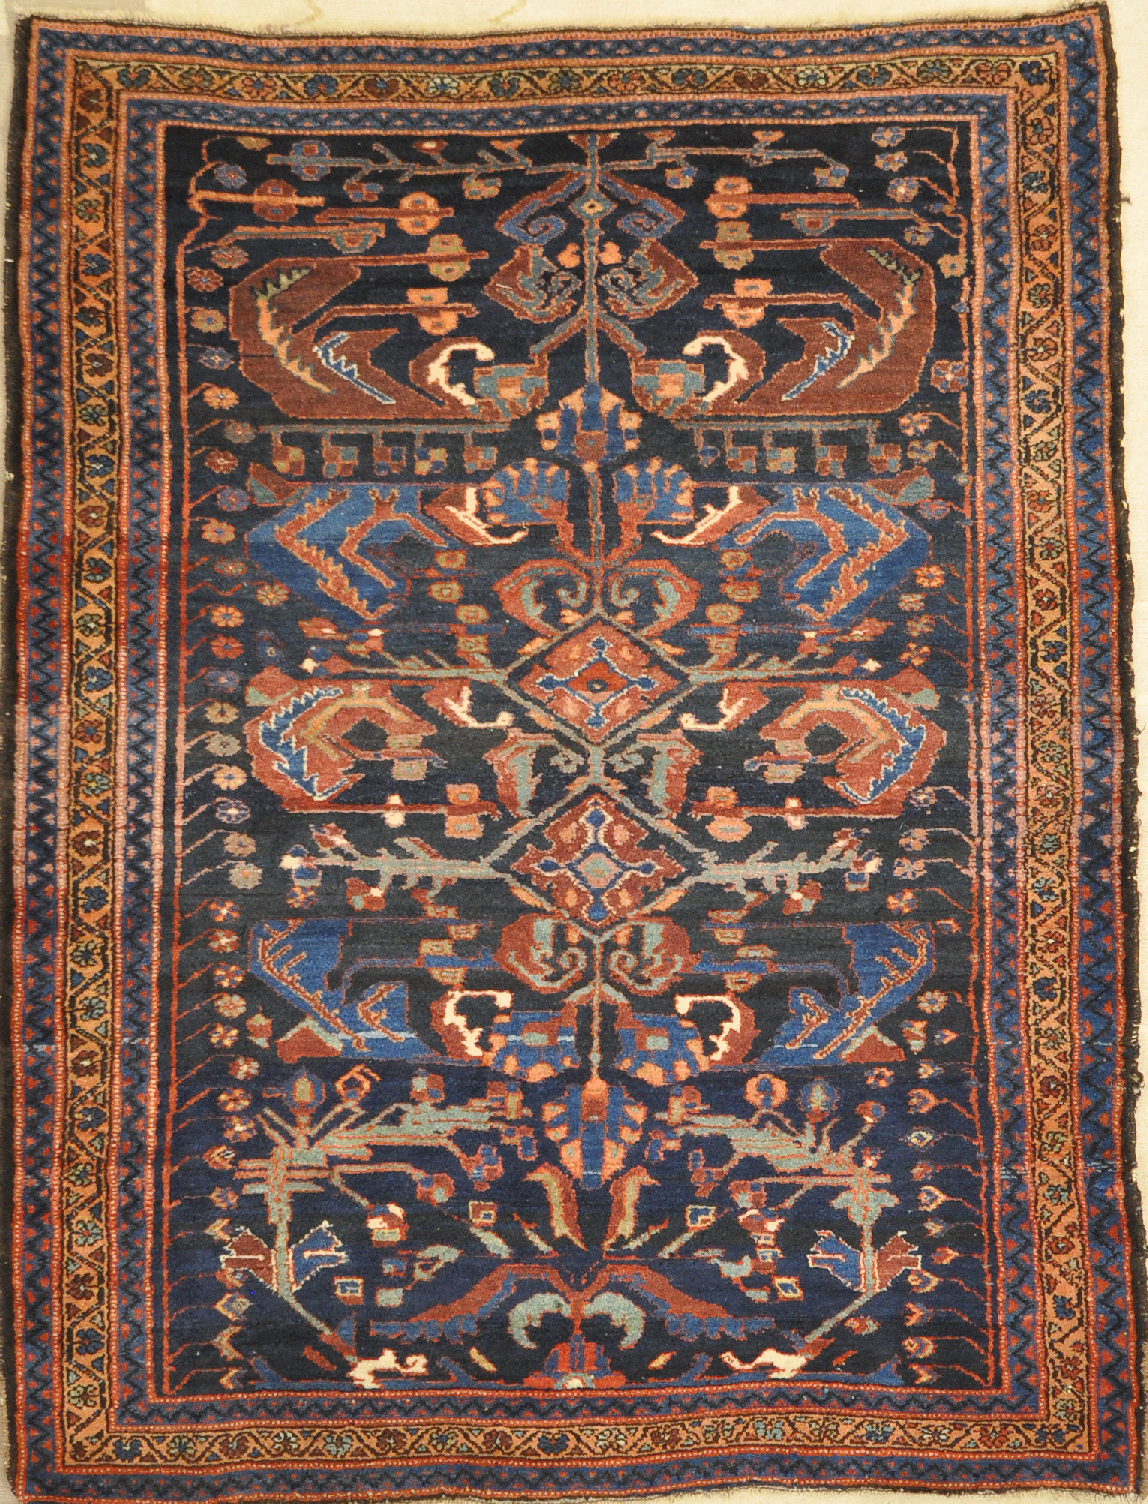 Antique Armanibaf Rug santa barbara design center